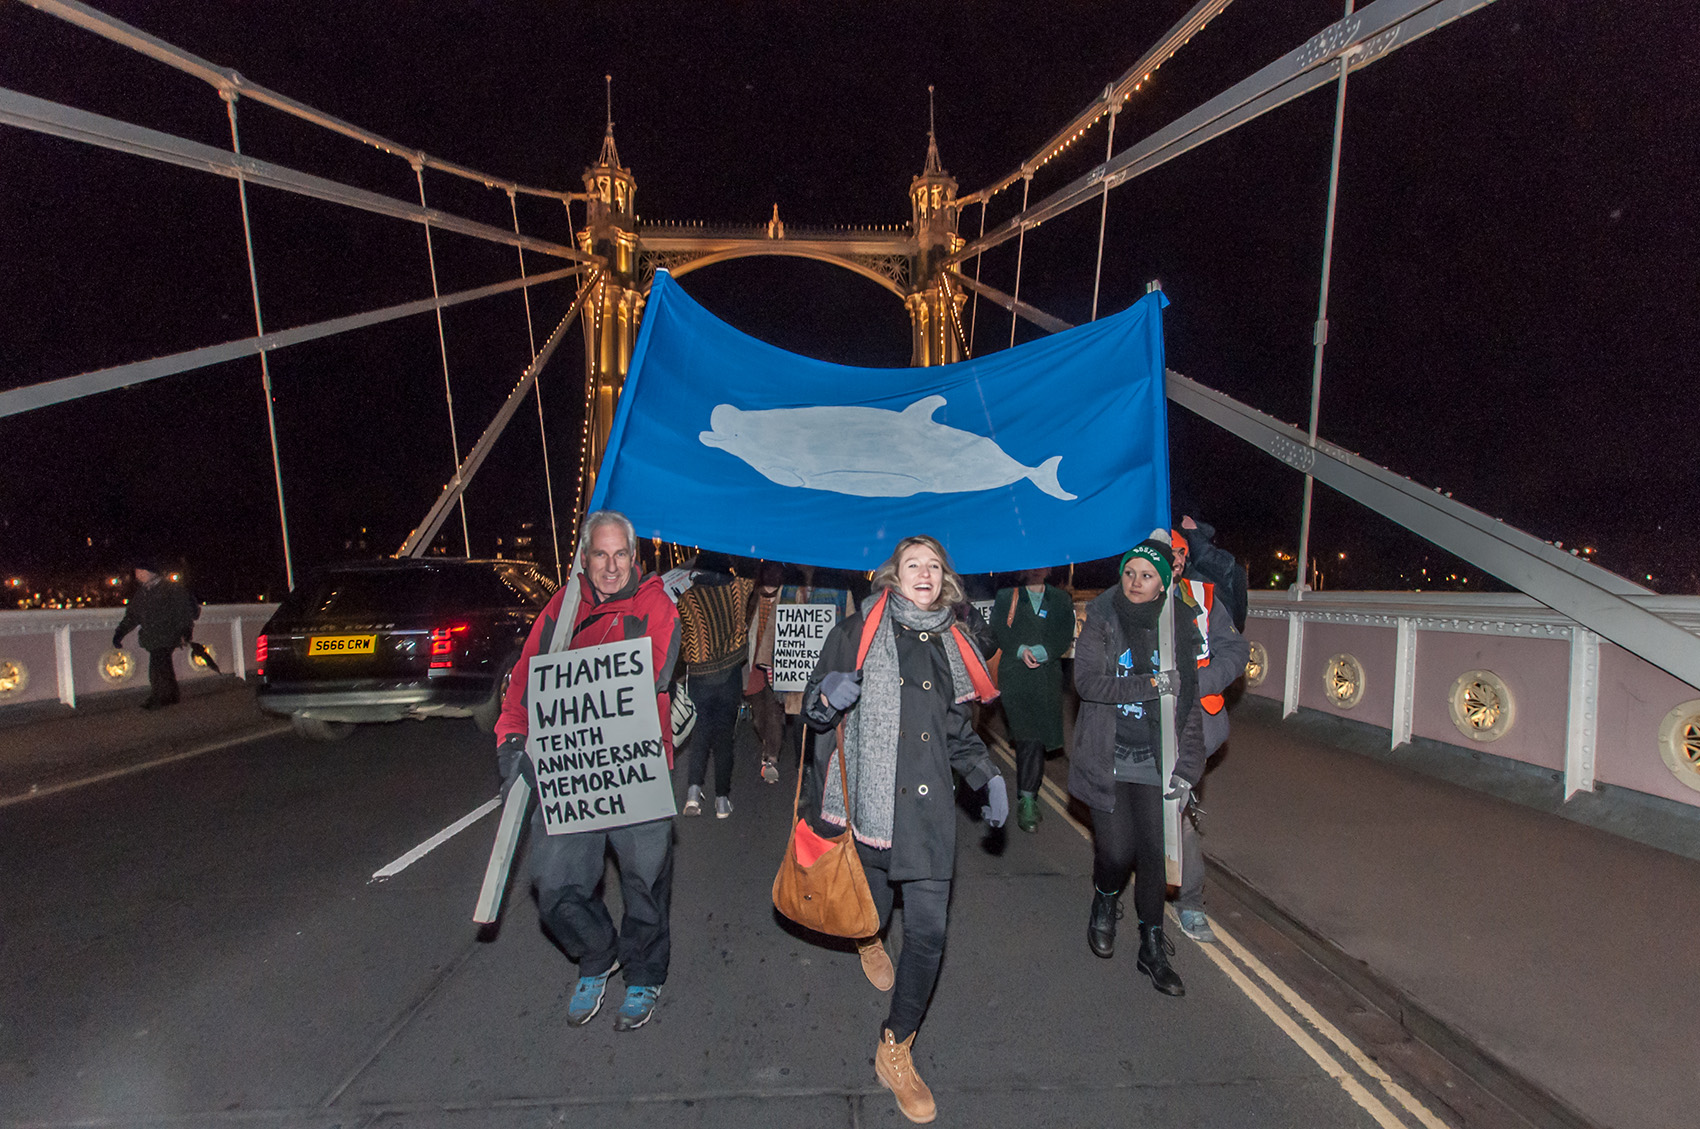 People marching with whale banner at the Ten Year Thames Whale Memorial March